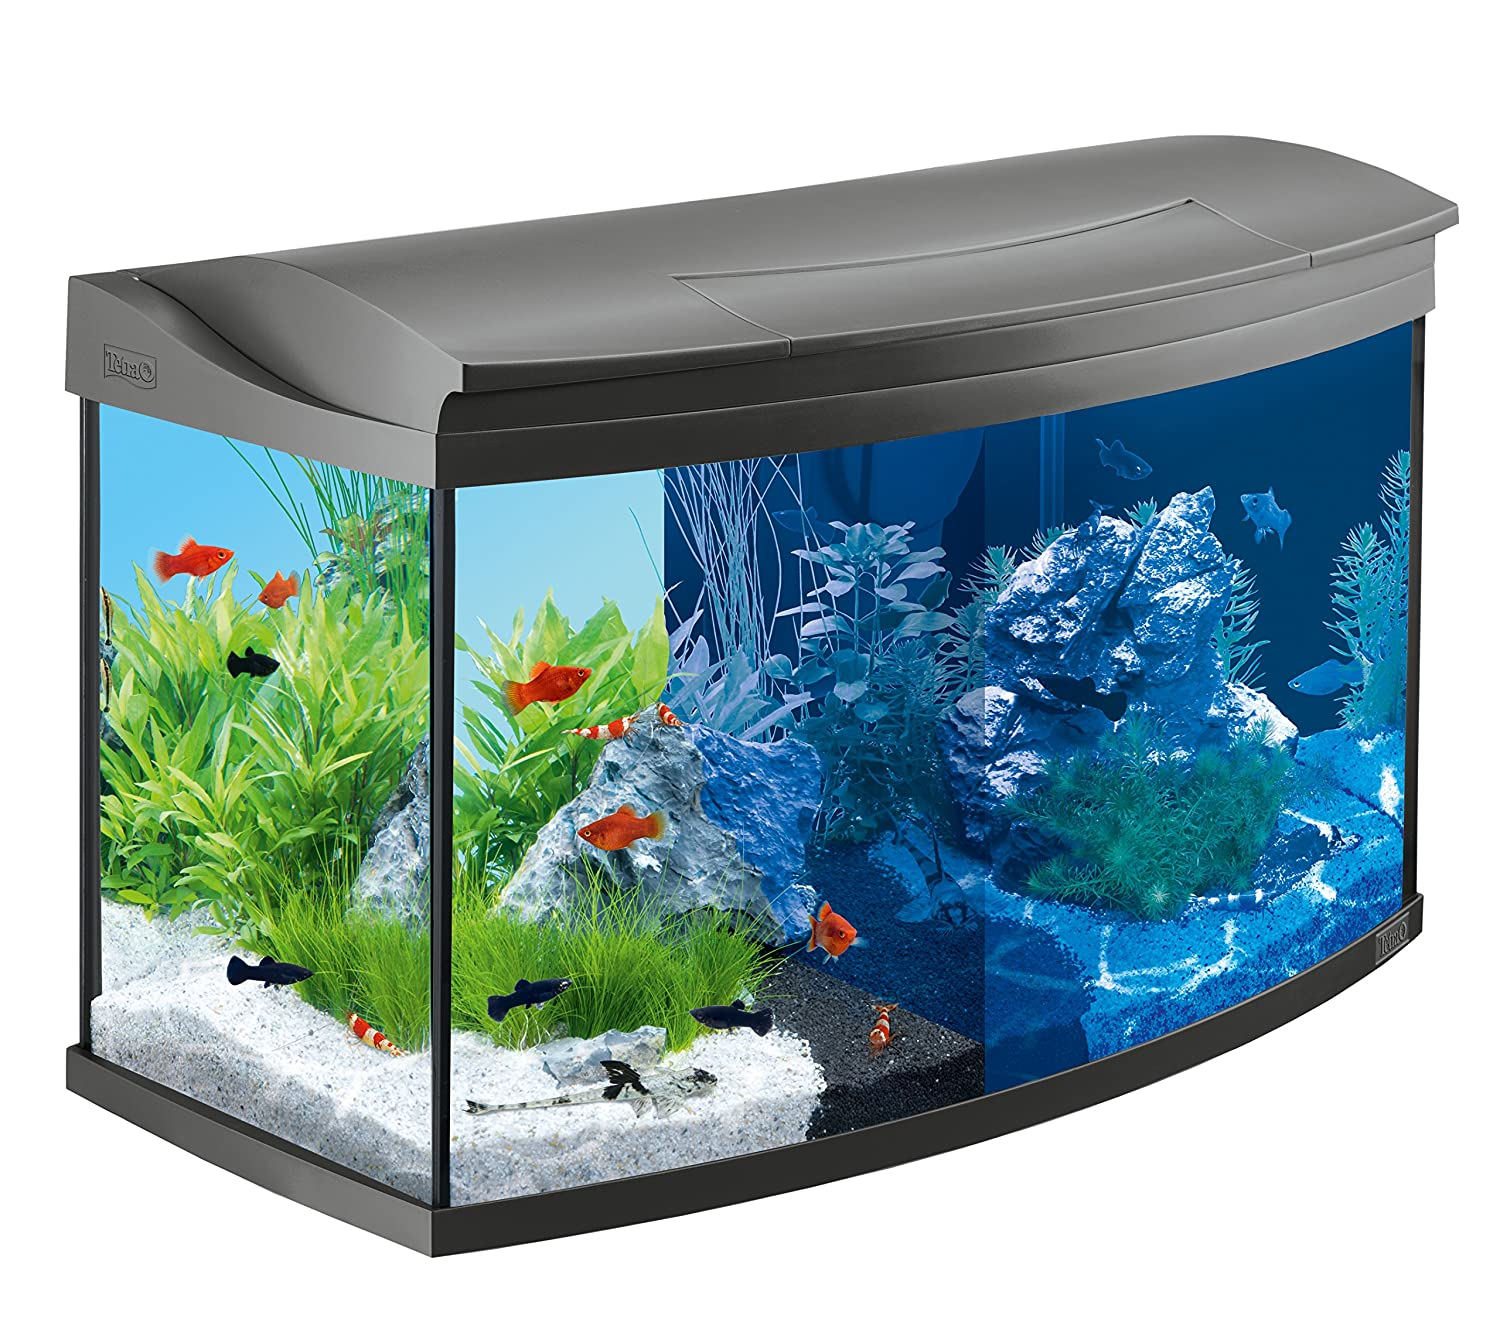 tetra aquaart discovery line led aquarium komplett set inklusive led beleuchtung tag und. Black Bedroom Furniture Sets. Home Design Ideas